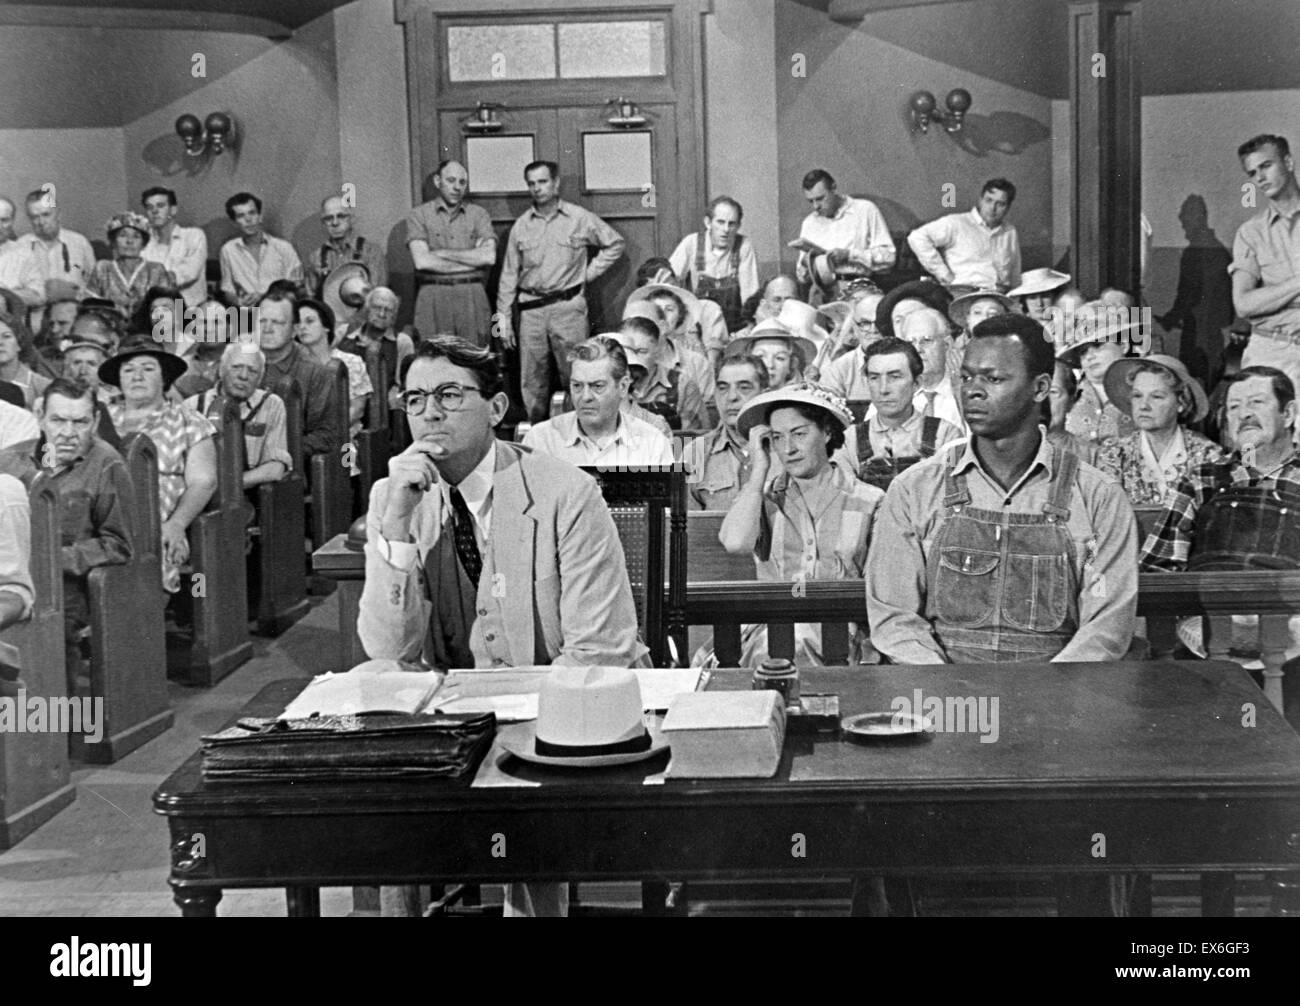 Film still from 'To Kill a Mockingbird' with Gregory Peck's (1916-2003) character, Atticus, is on trial. - Stock Image